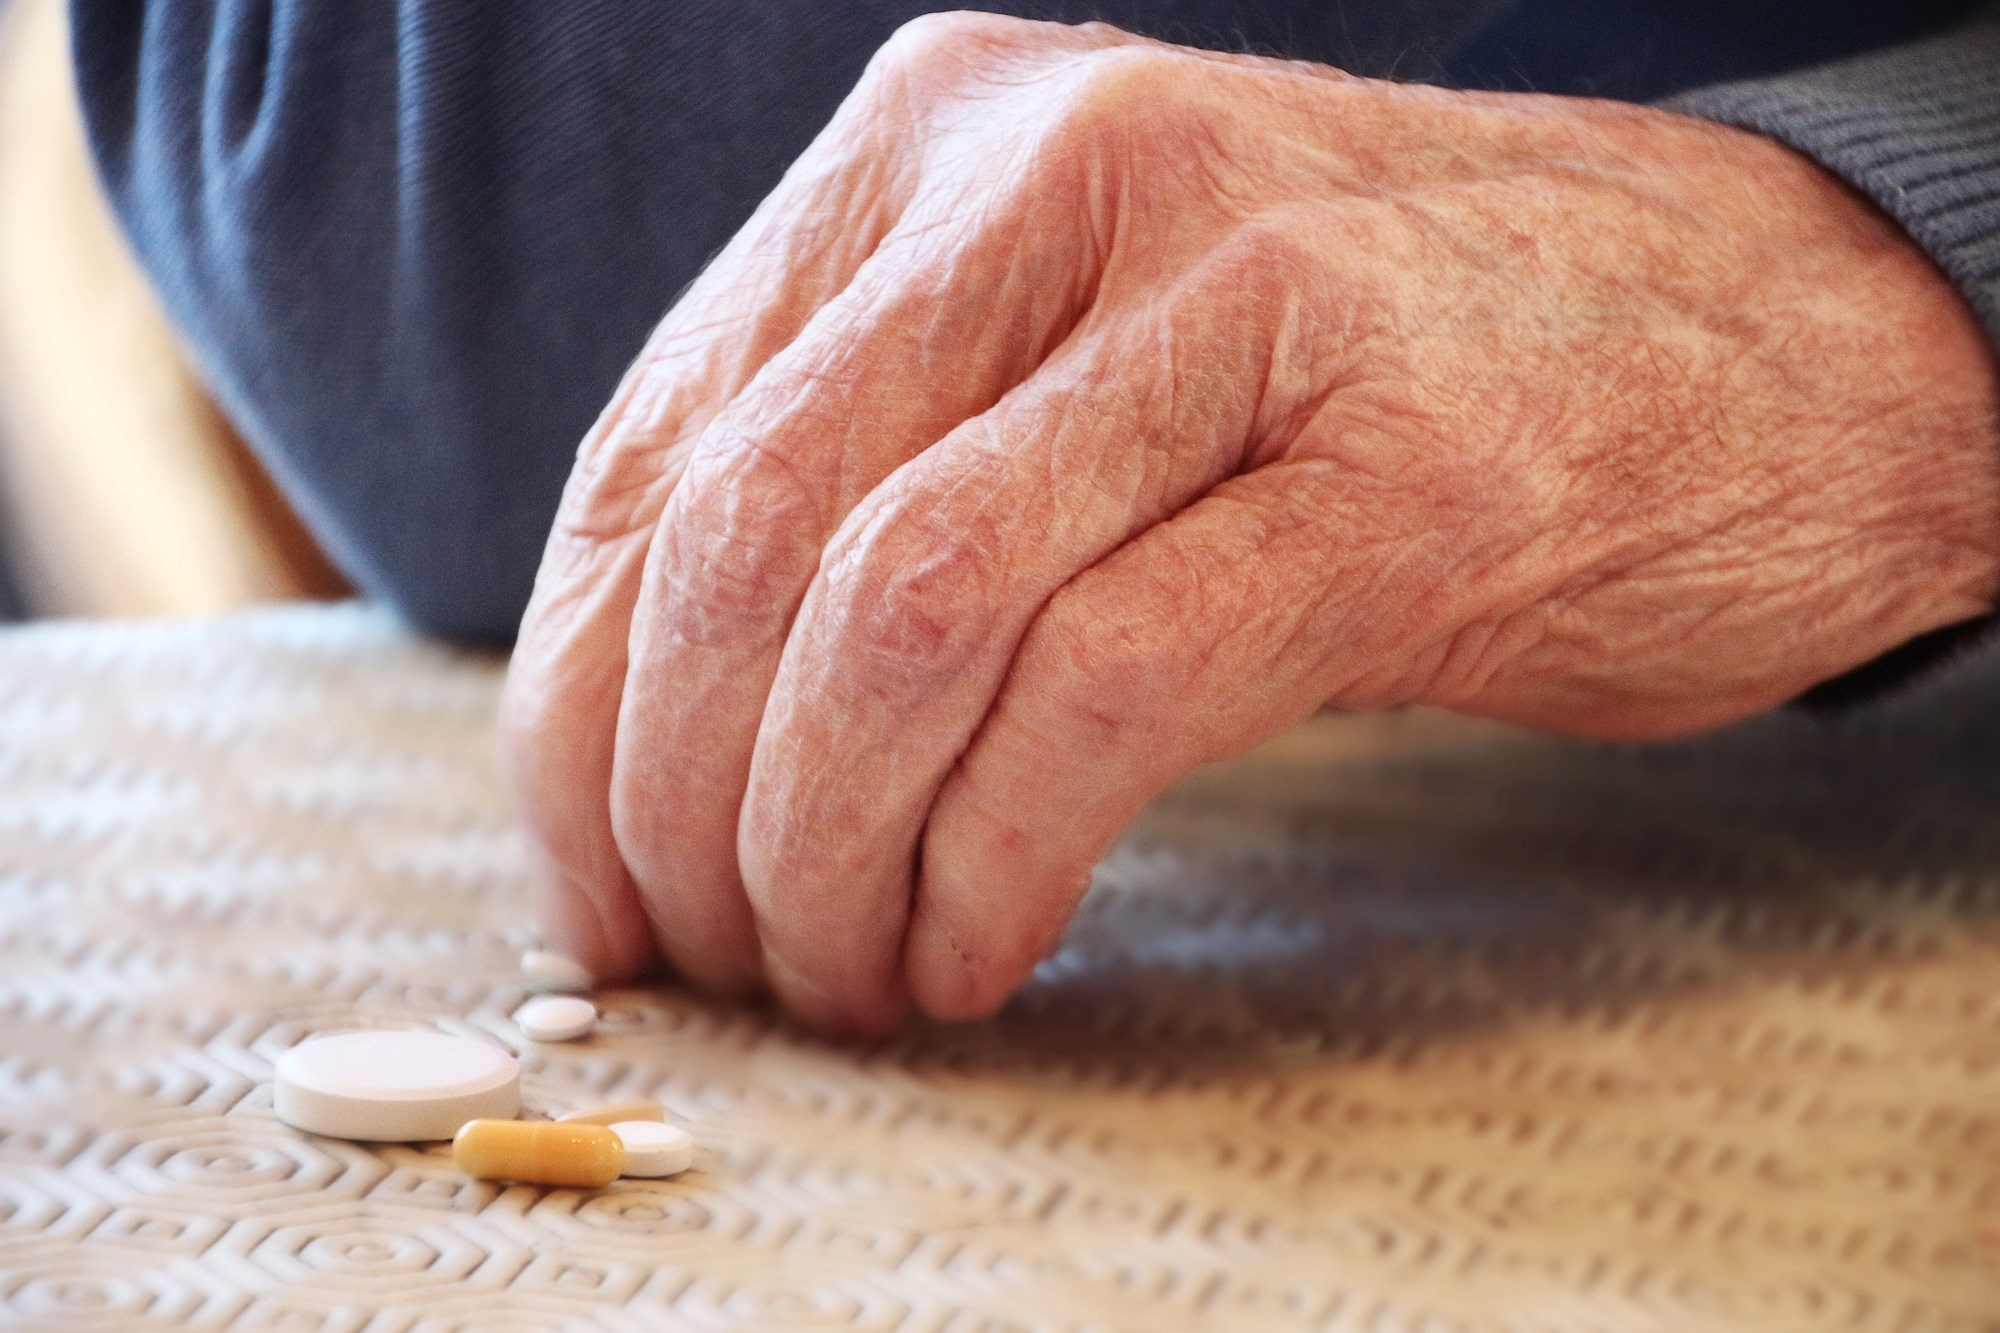 Antipsychotic Use More Frequent for Off-Label Indications in Older Adults